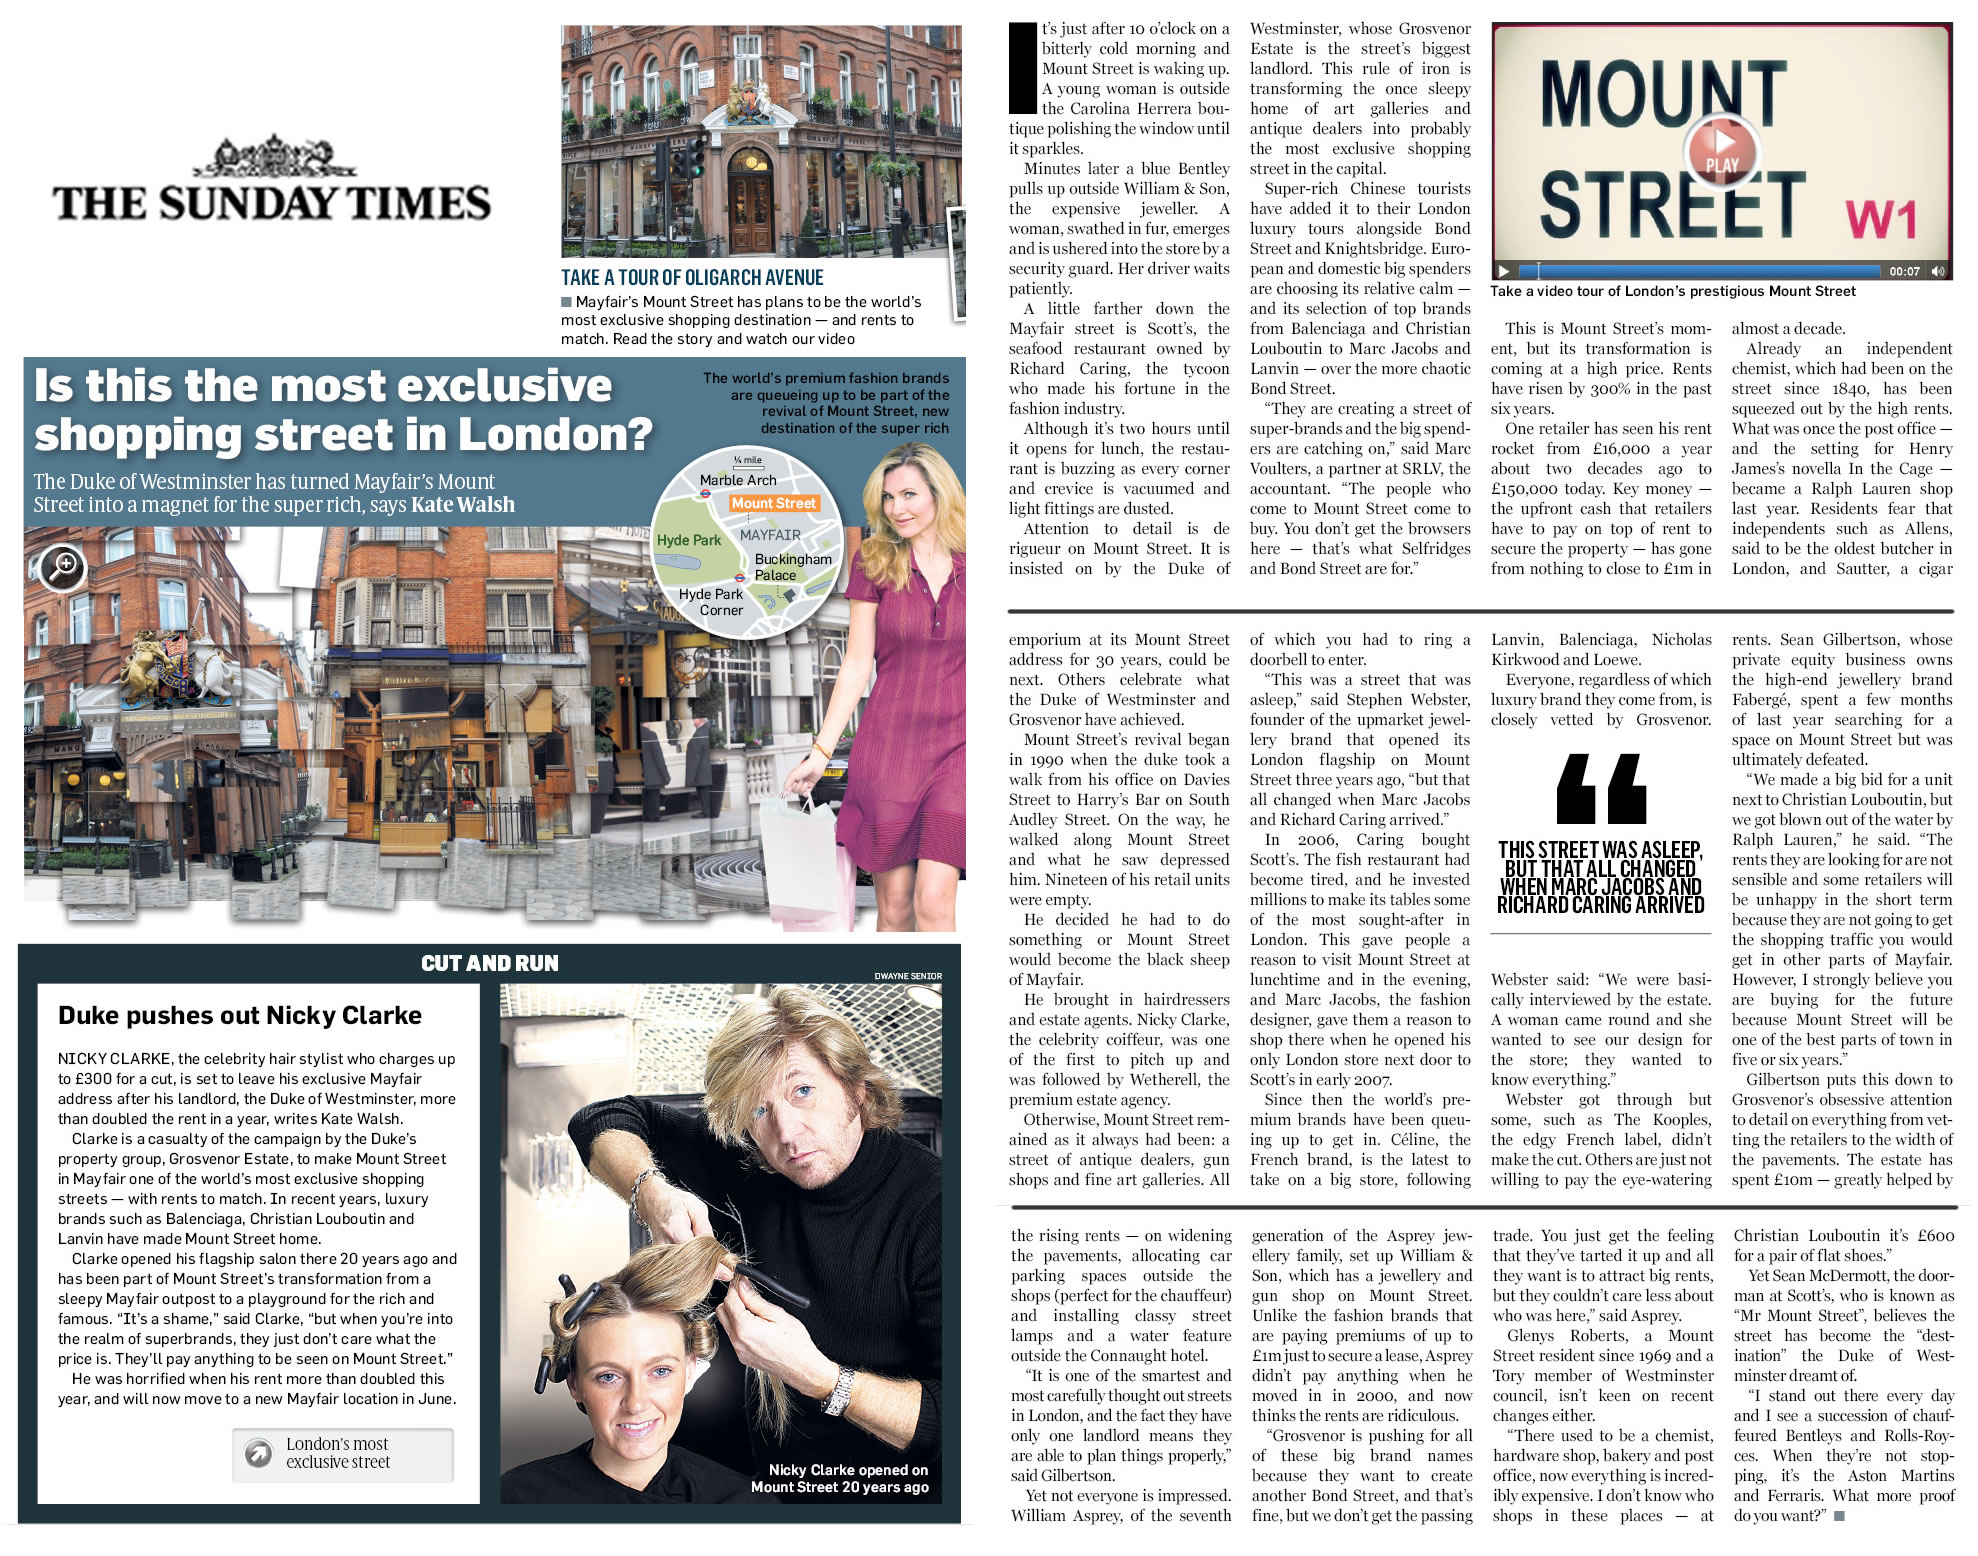 'Is this the most exclusive shopping street in London?' - The Sunday Times